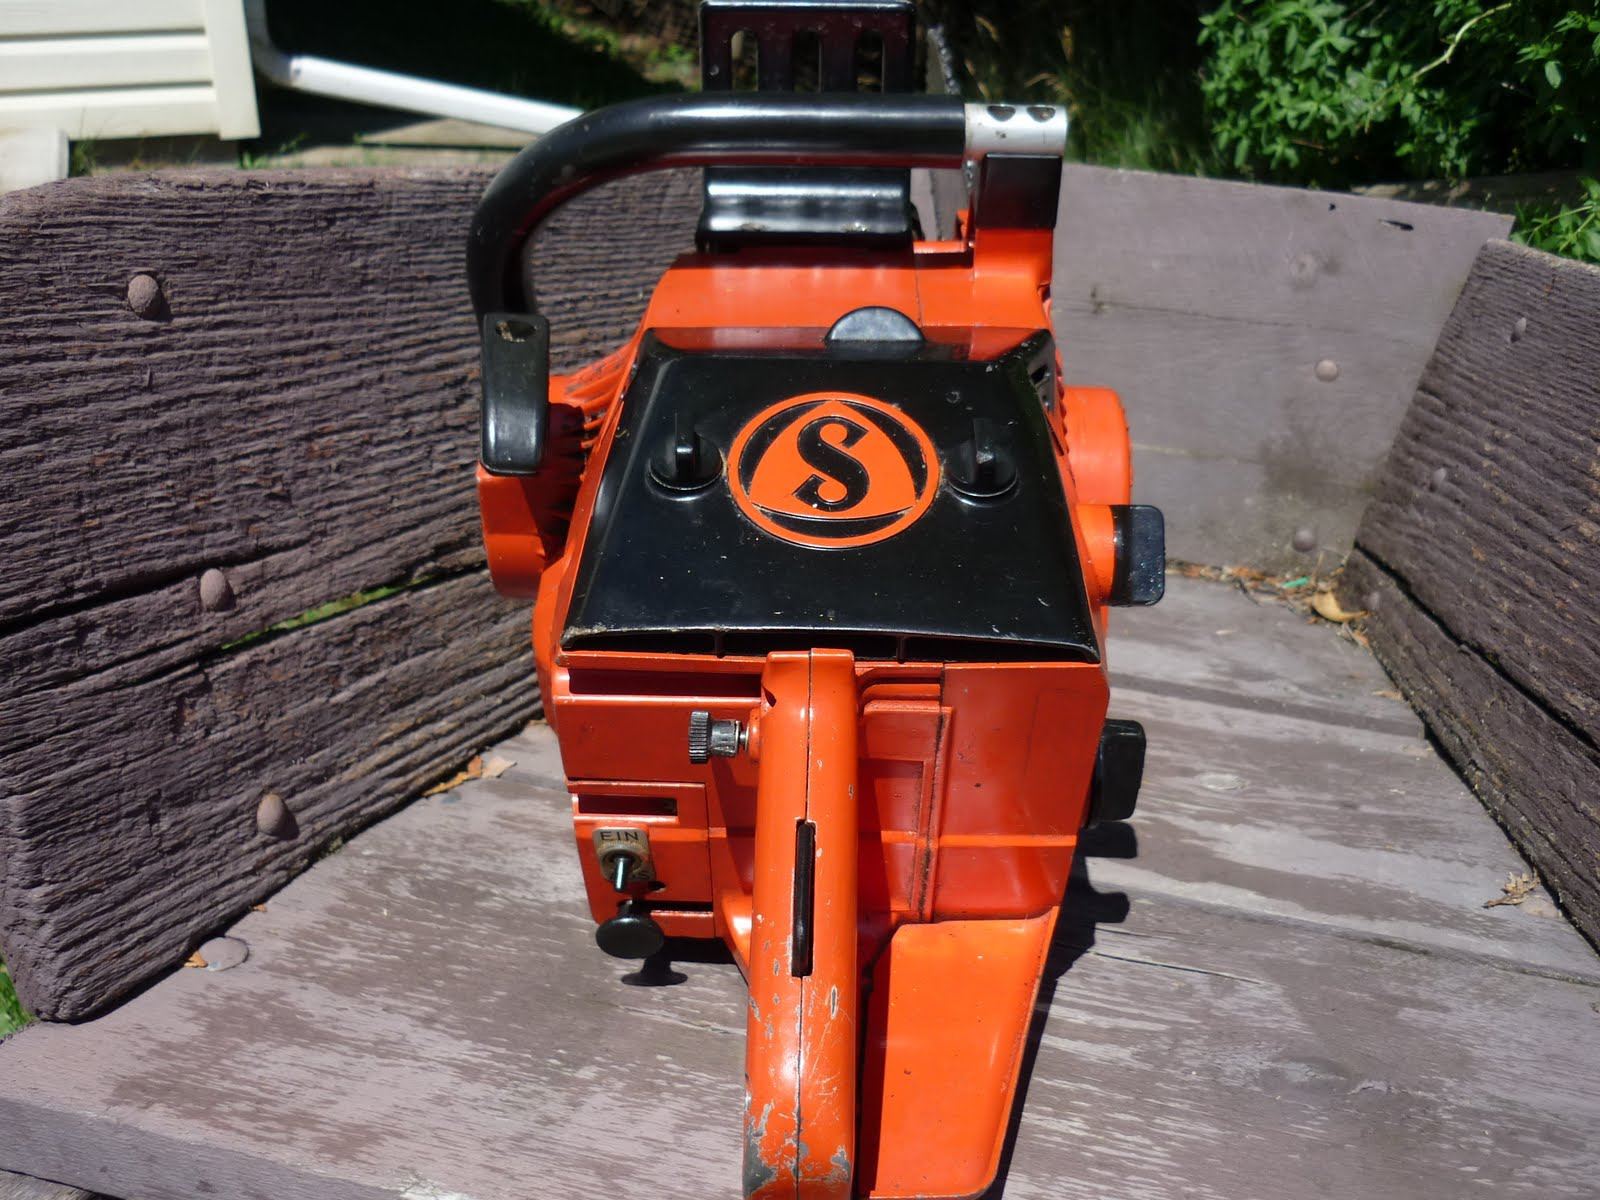 VINTAGE CHAINSAW COLLECTION: DOLMAR SACH/WANKEL/ROTARY KMS4